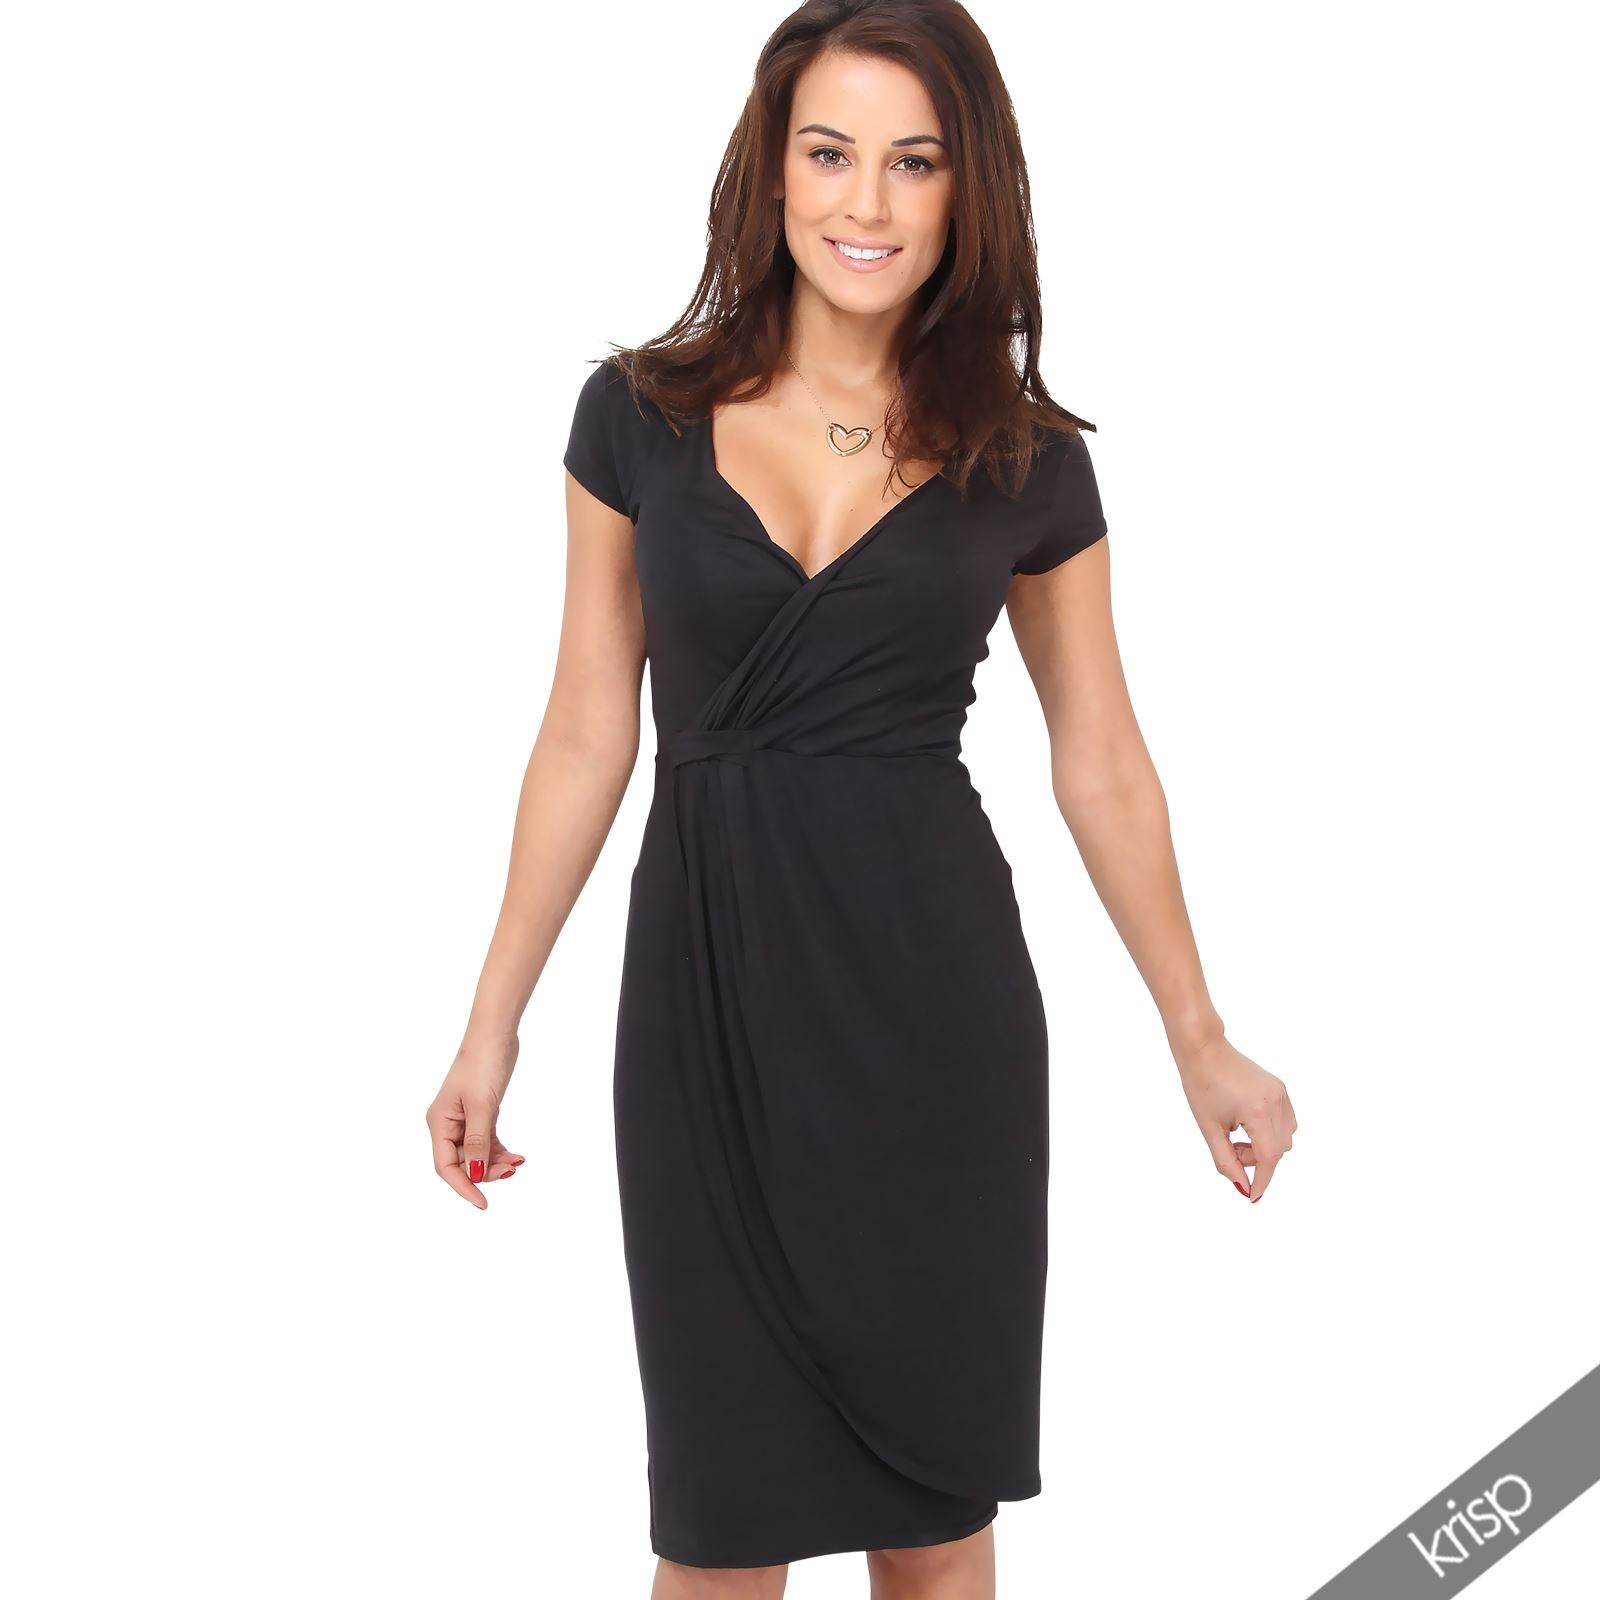 Unique By Alexander Wang Jersey Dress For Women  Oooxe